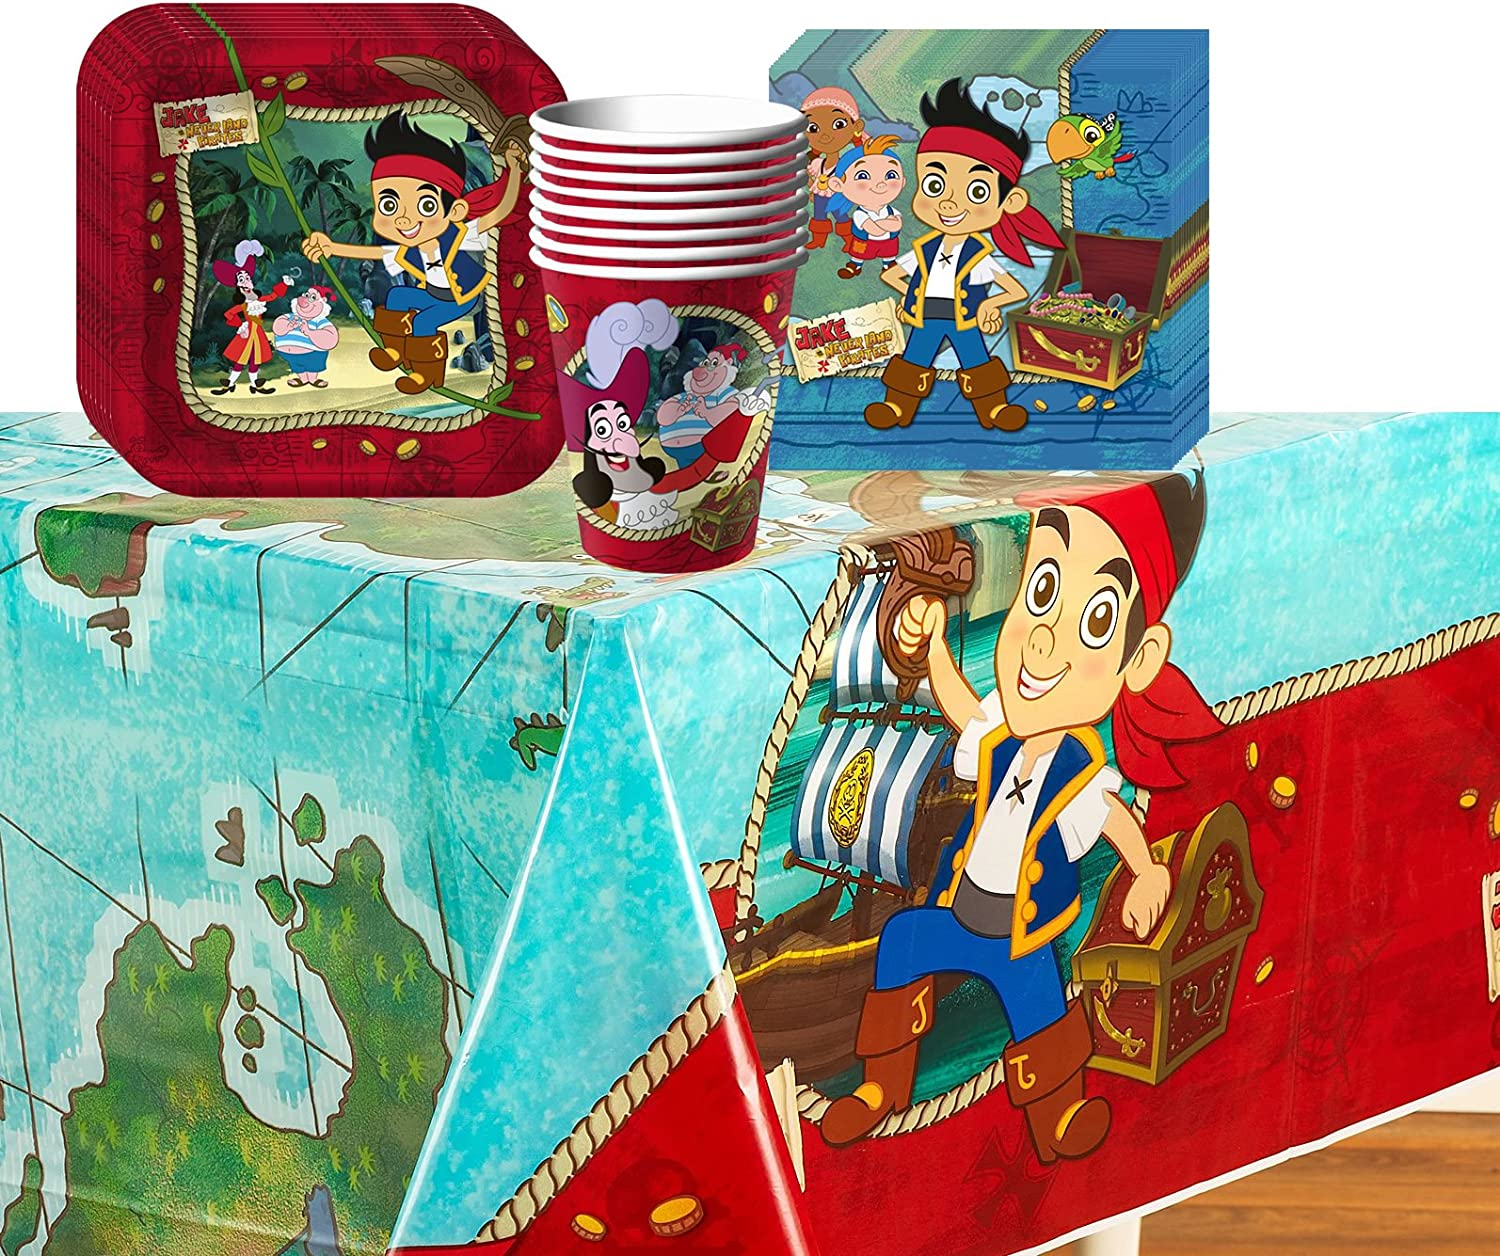 Disney Jake and the Never Land Pirates Party Supplies Pack for 8 Guests Incluides Plates, Cups, Napkins and Tablecover